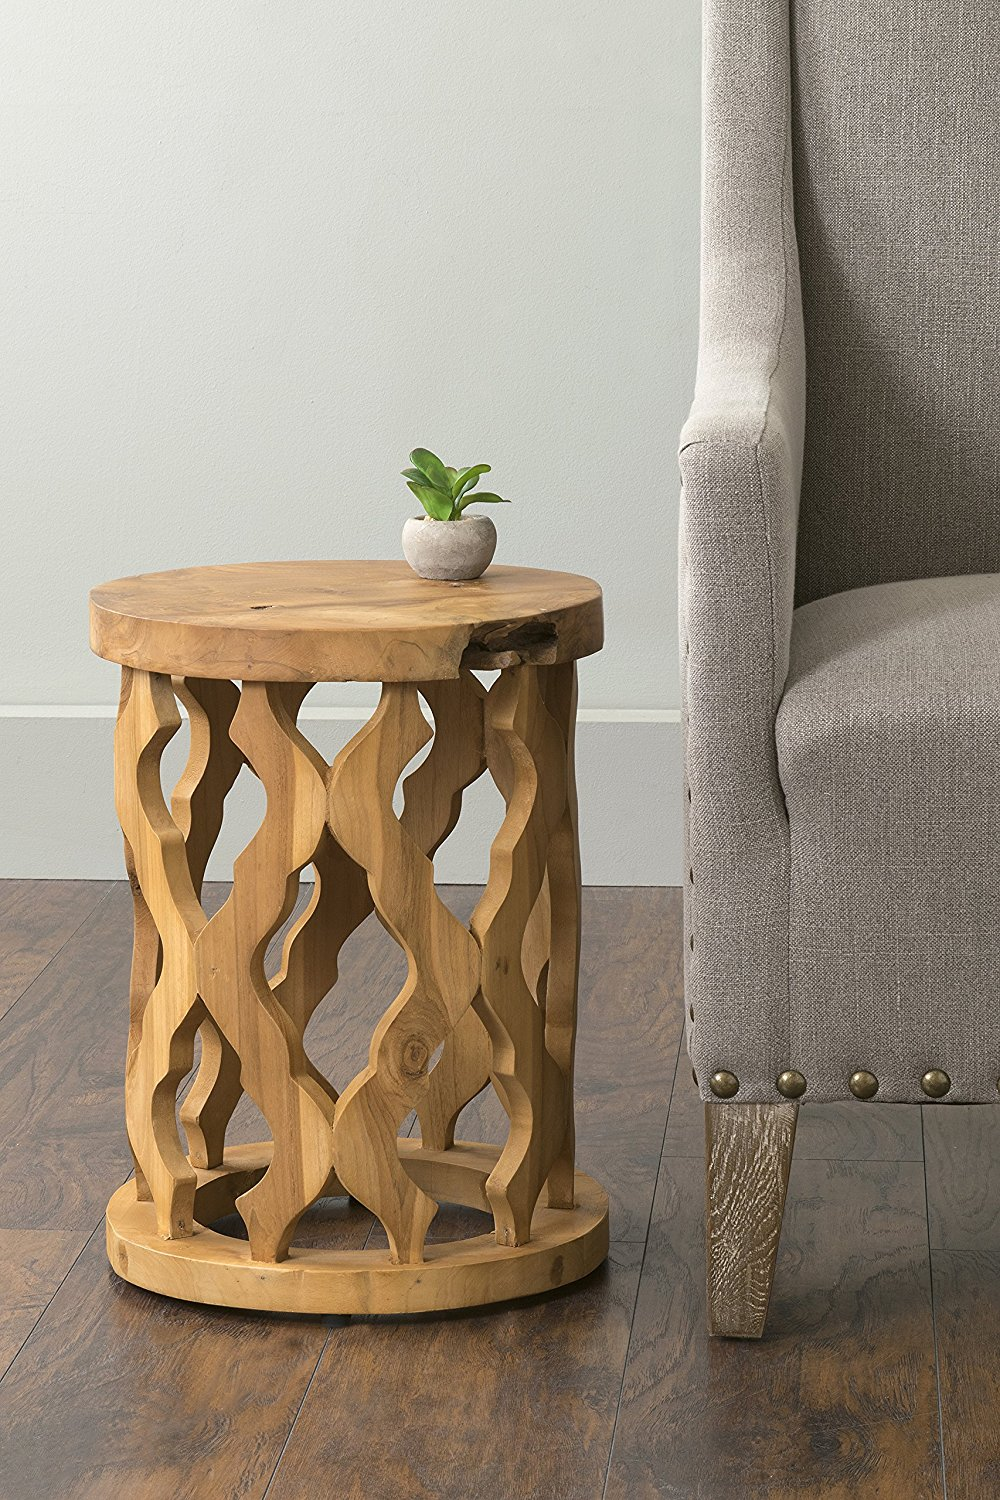 east mains lenox brown round teakwood accent end table teak wood main black bedside modern cabinet uma furniture nook metal bar high top and chairs large antique coffee dale